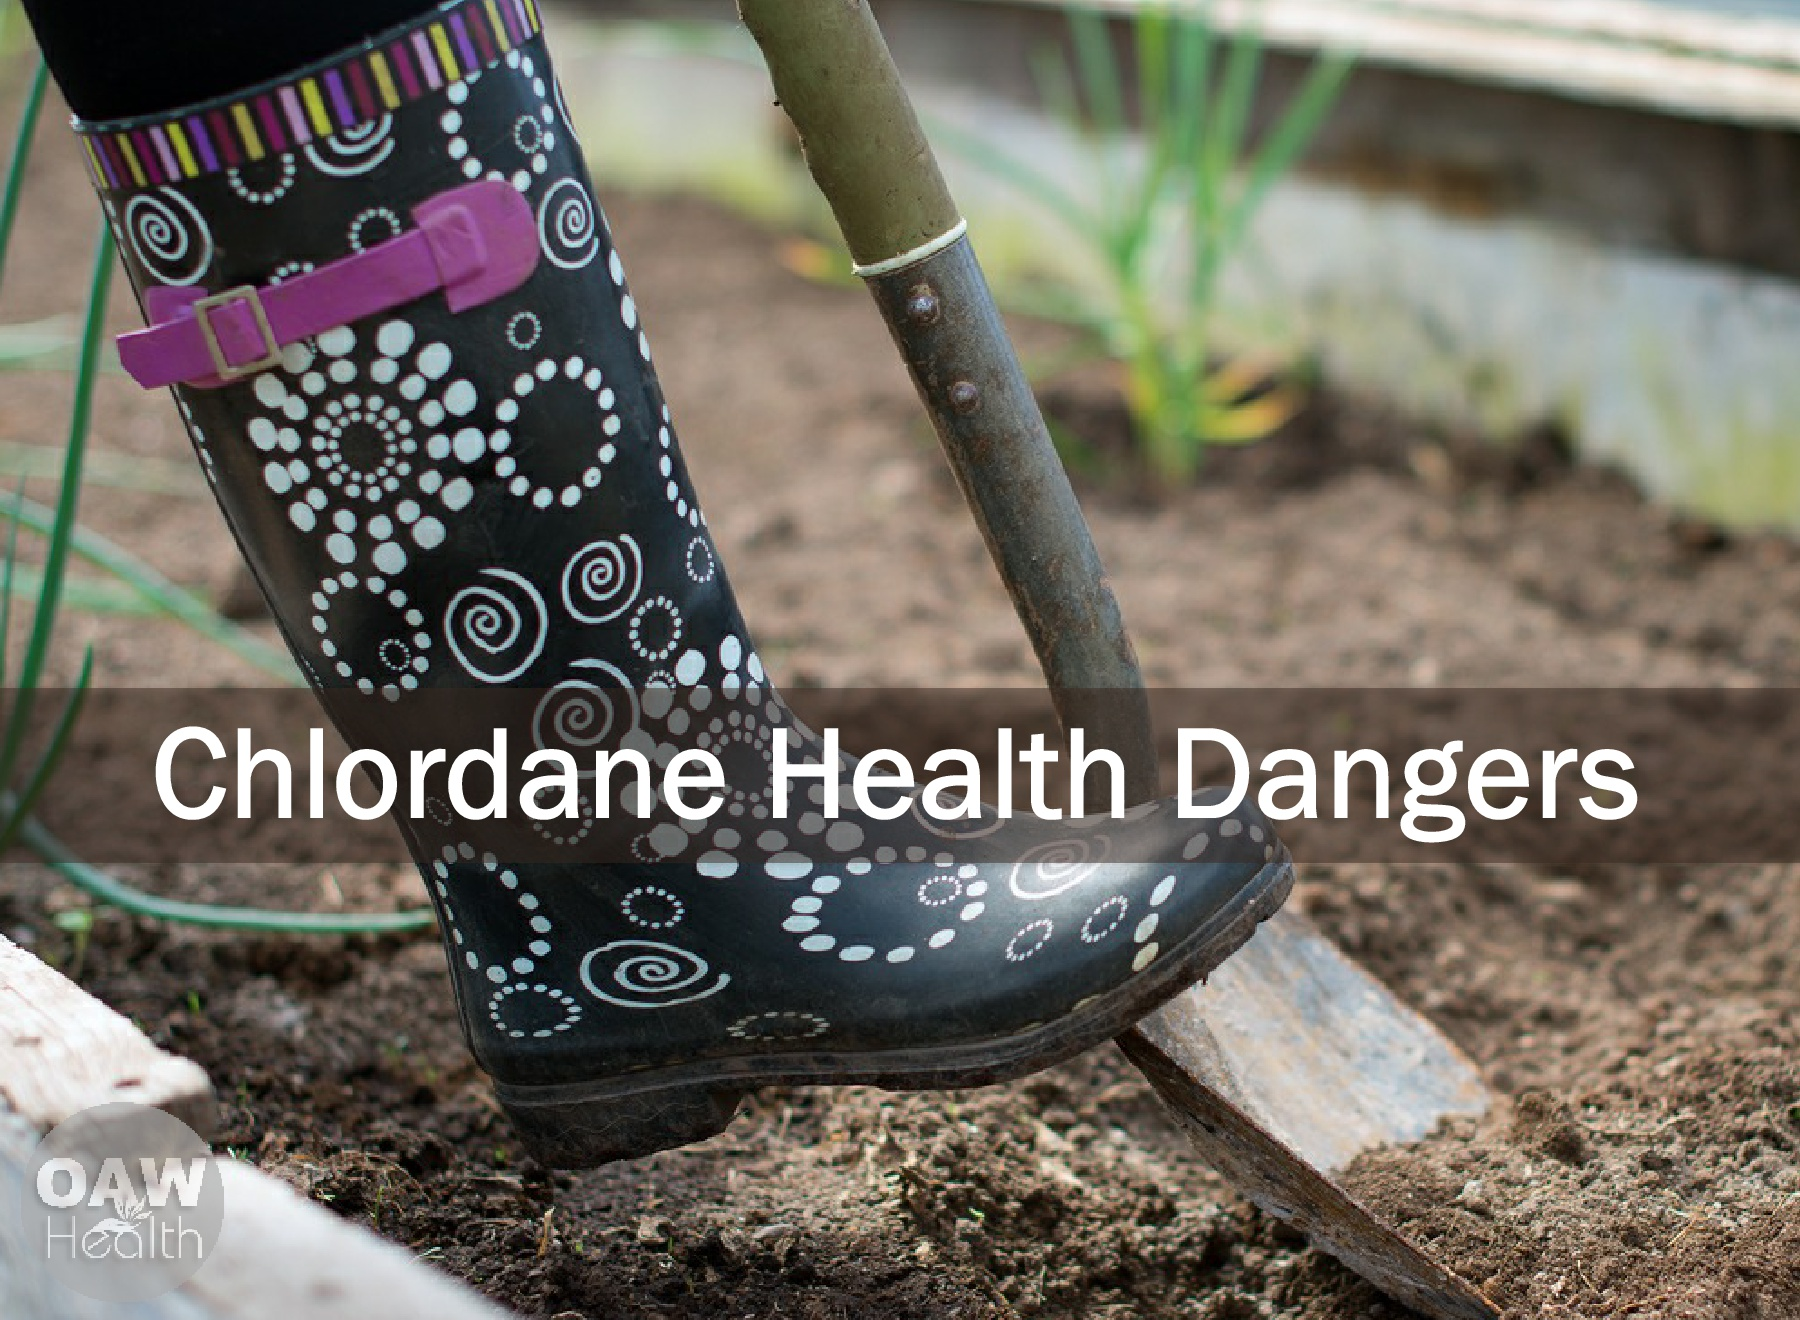 Chlordane Health Dangers Still Abound